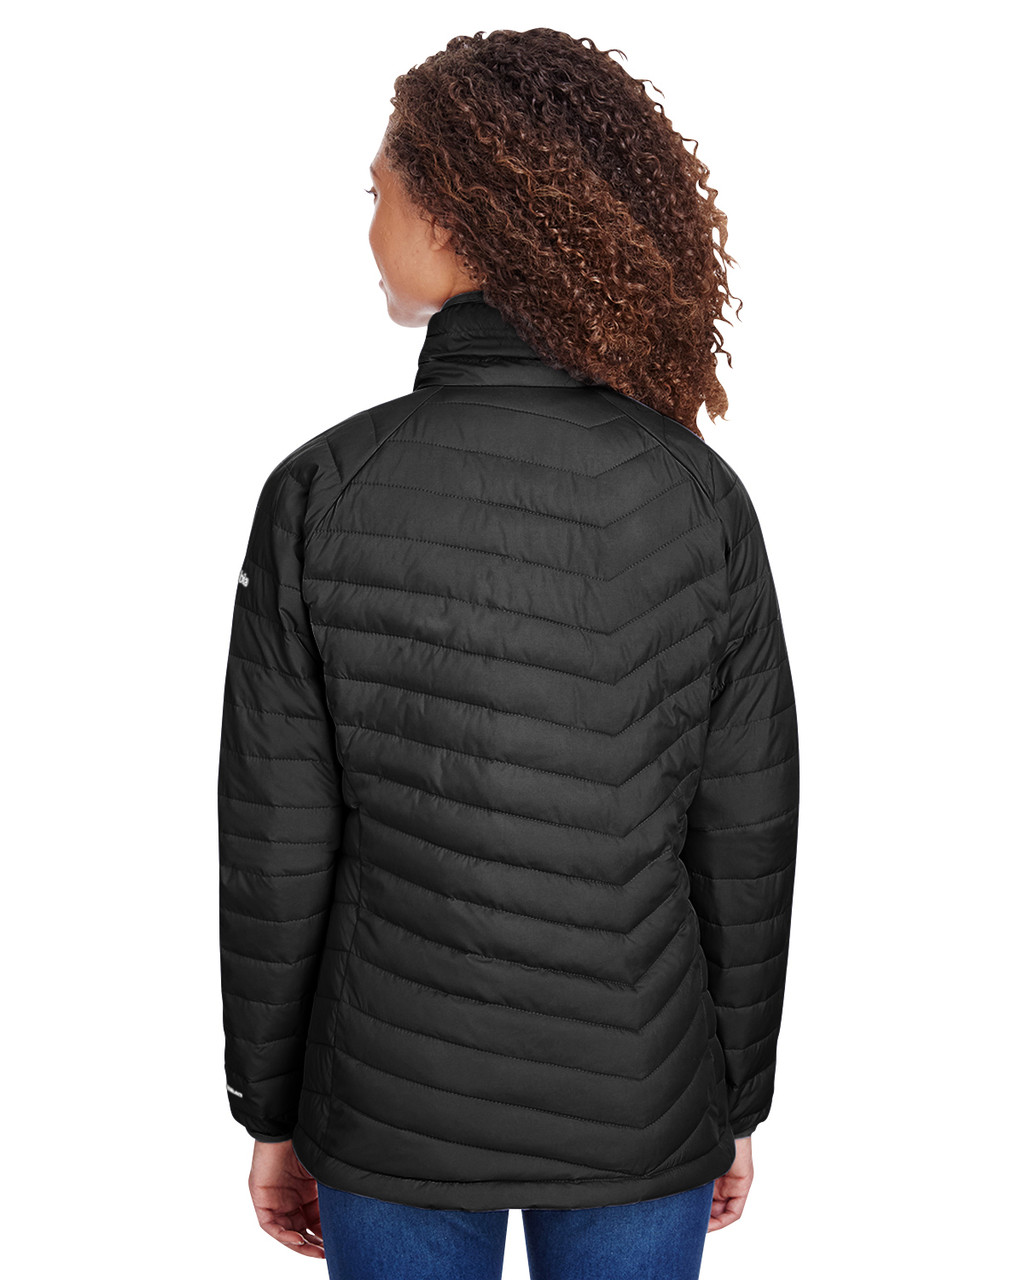 Black - Back, 1699061 Columbia Ladies' Powder Lite™ Jacket | Blankclothing.ca